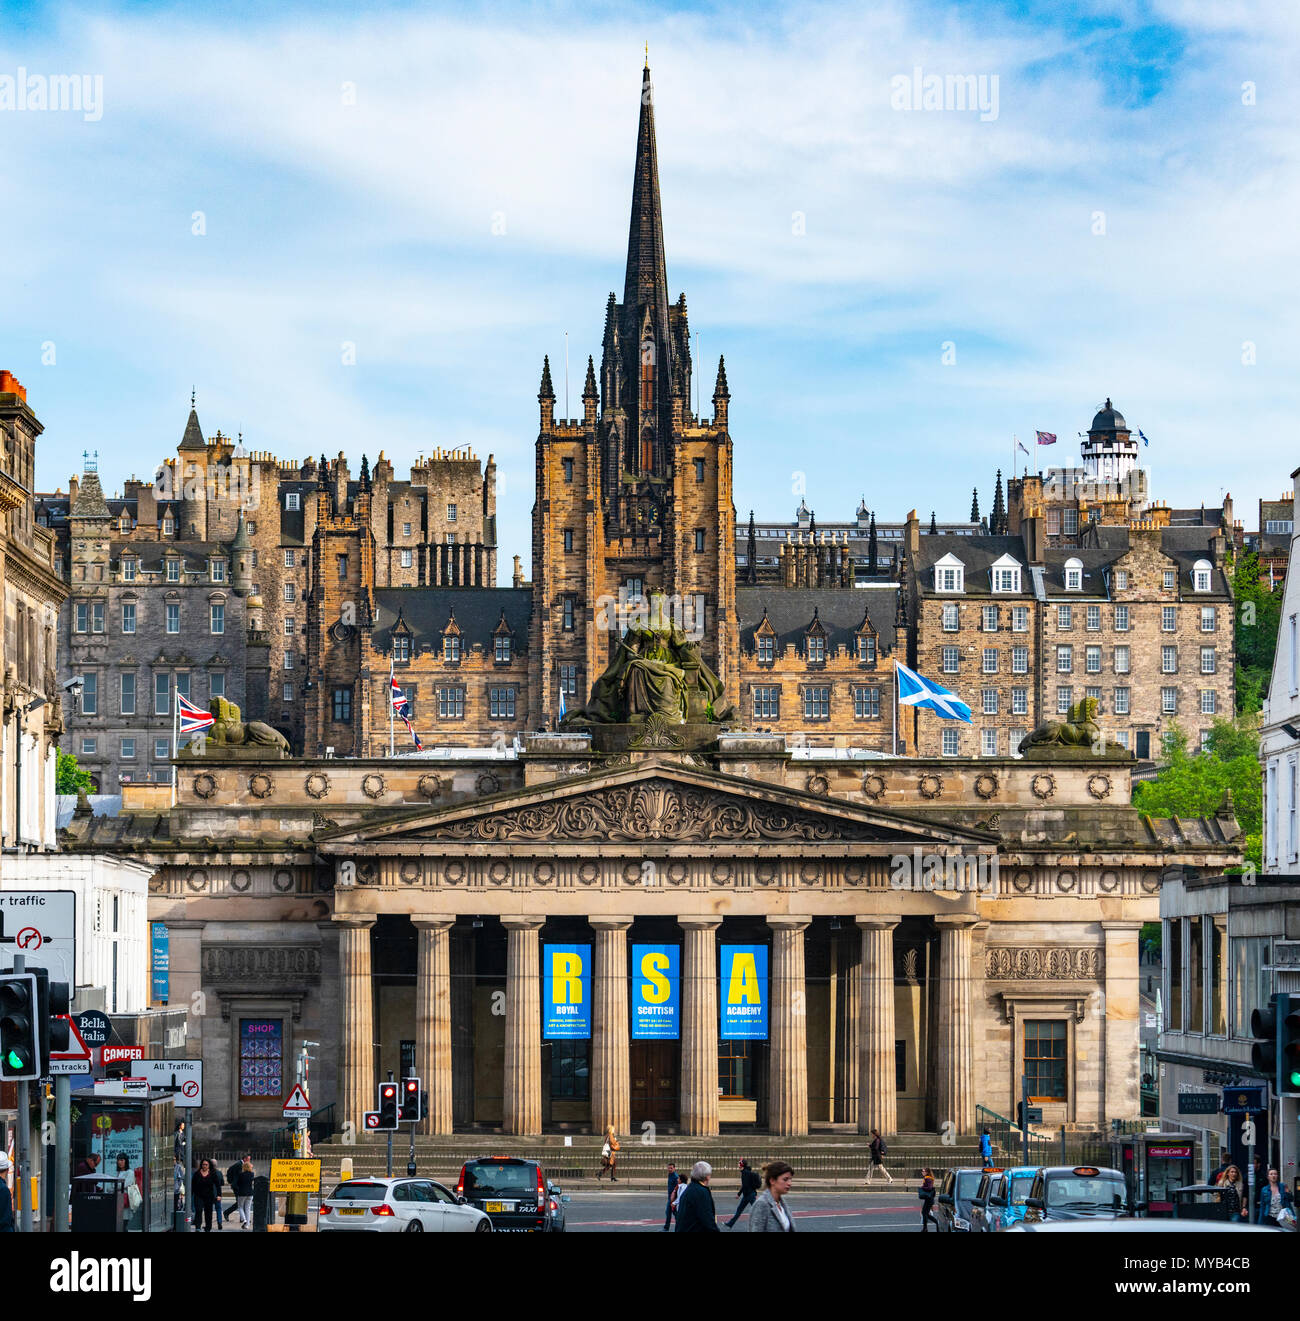 View of busy streets with Royal Scottish Academy and Old Town to rear in Edinburgh, Scotland, UK - Stock Image